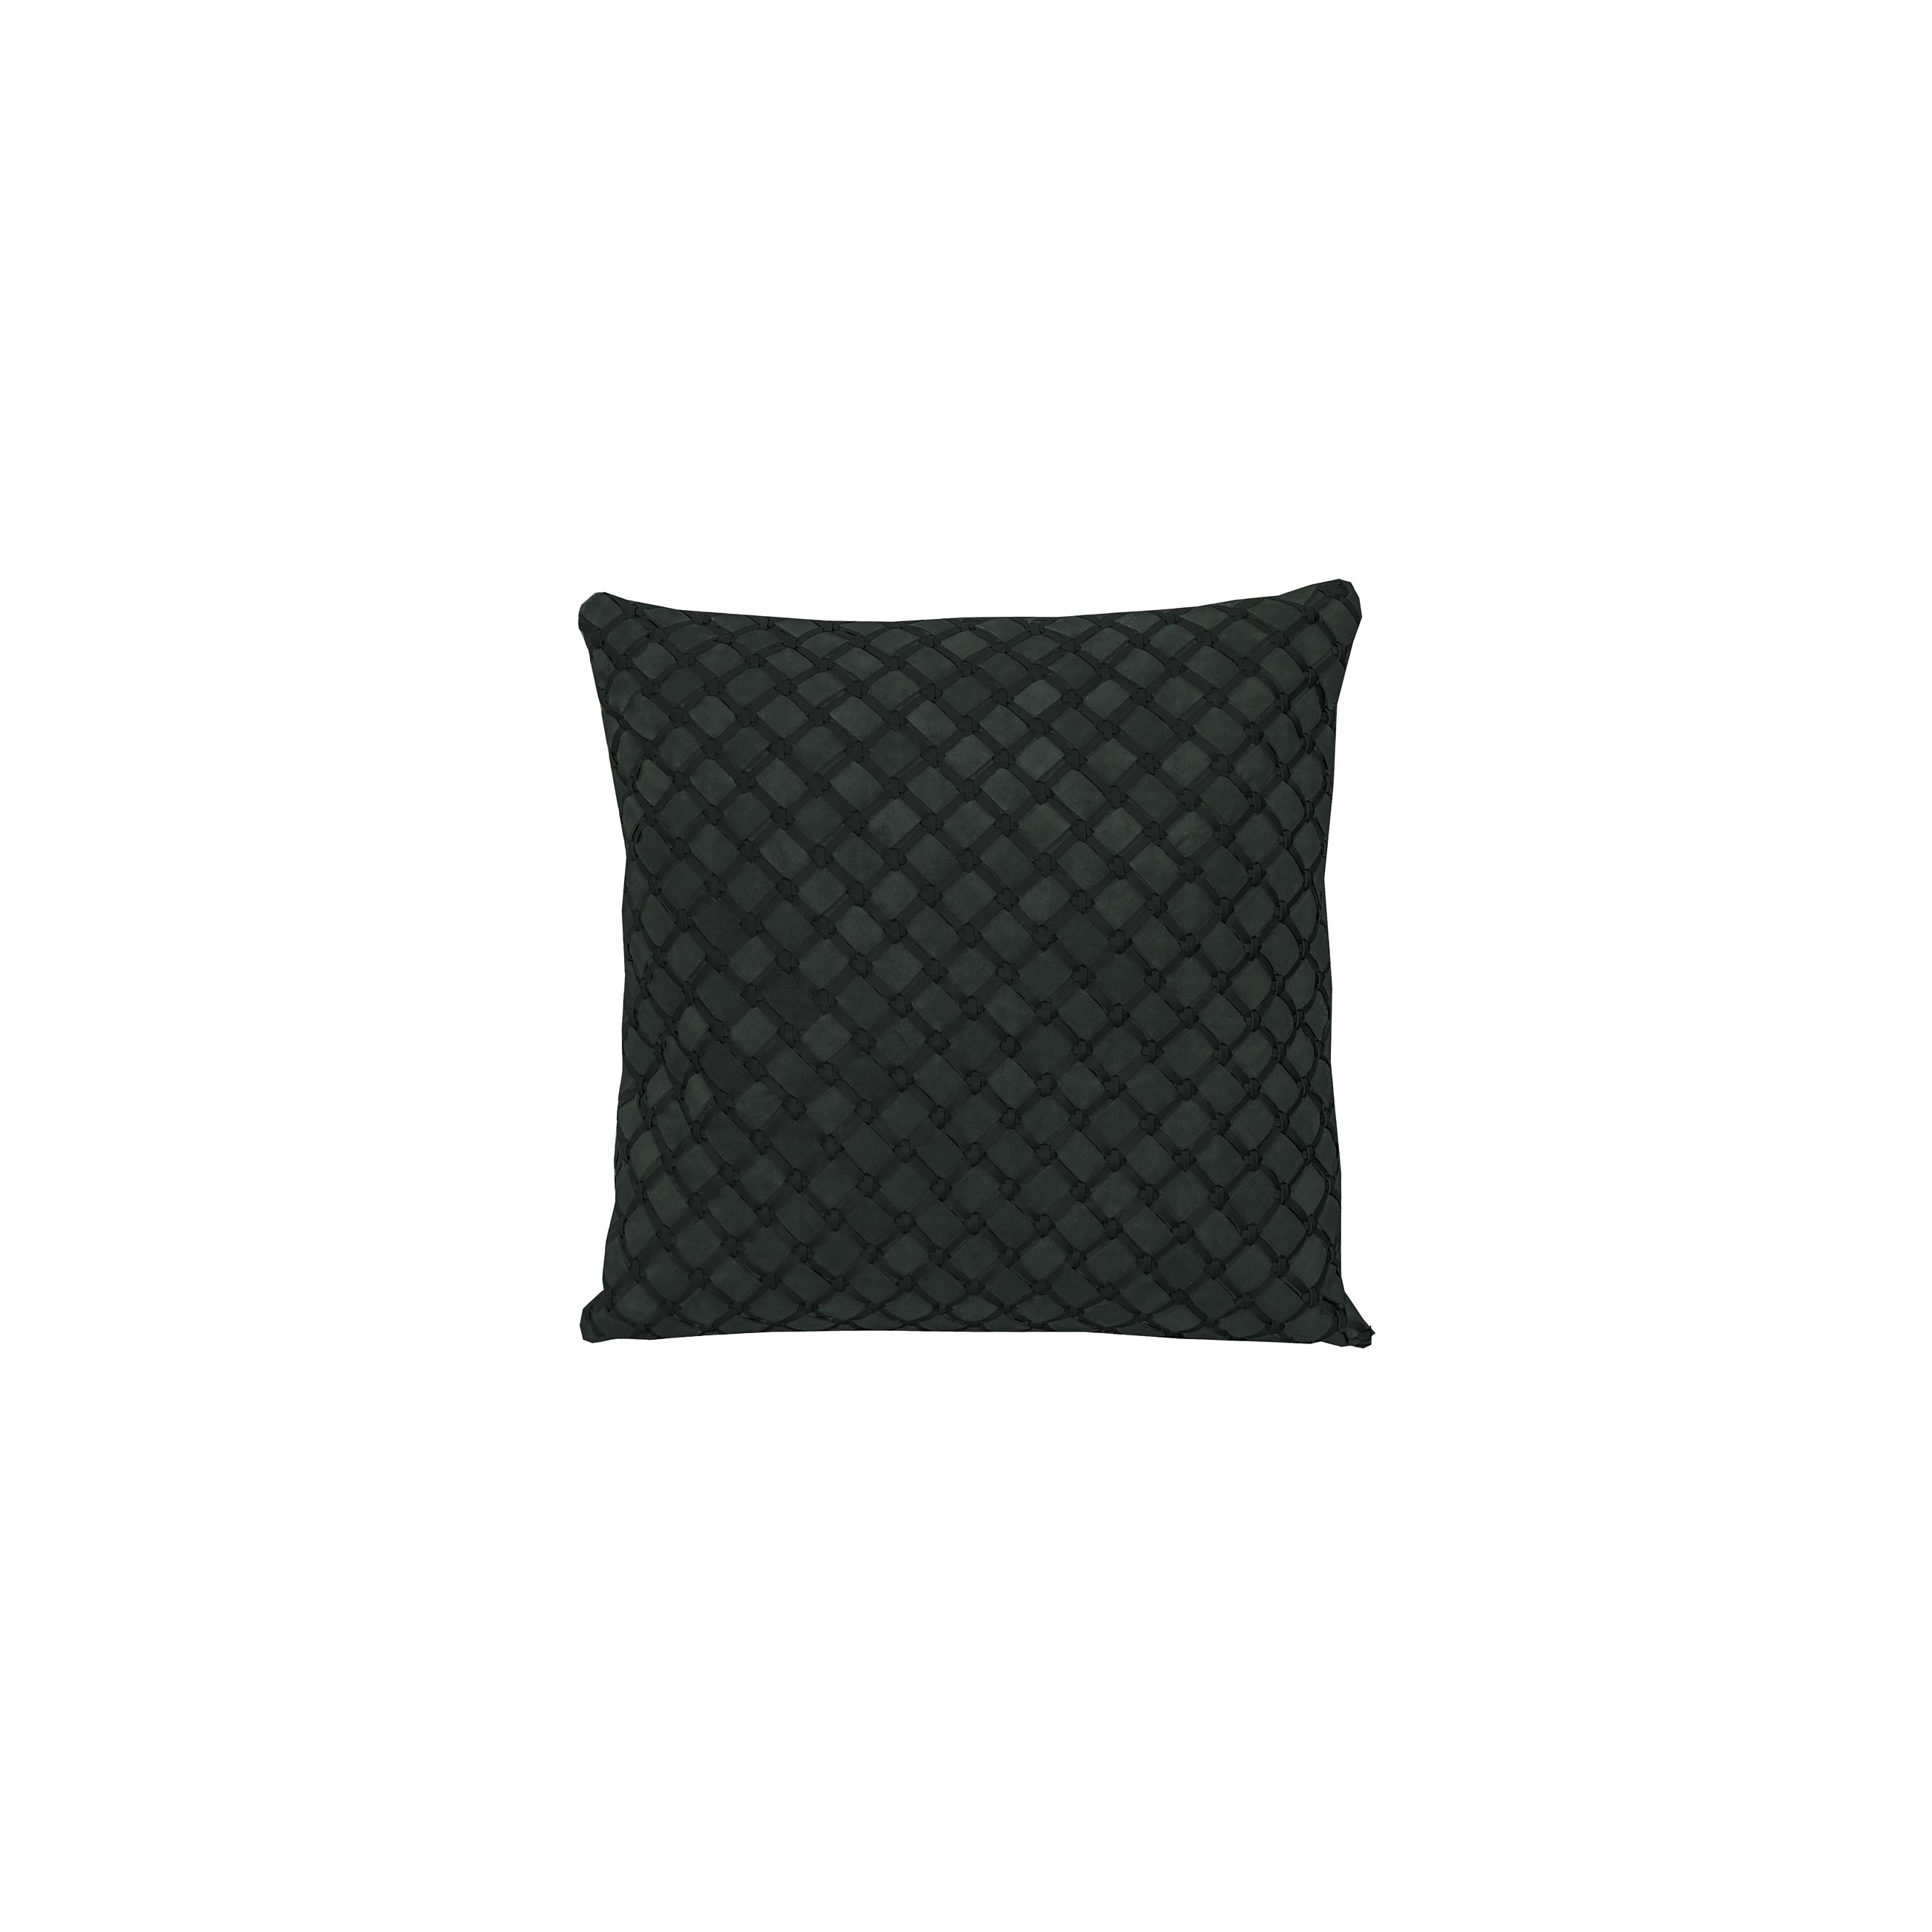 Geometrico Woven Leather Cushion Medium - <p>The Medium Geometrico Leather Cushion is designed to complement an ambient setting, with a natural and sophisticated feeling. Our woven handmade leather cushions are specially manufactured in Brazil using an exclusive treated leather that brings a soft touch to every single piece. Cushion pads can be customised in a range of ethically sourced feathers, eco-friendly wool and allergy friendly fibres. Our fillings are sourced for their superior quality and properties to make only the finest quality cushion pads. </p>